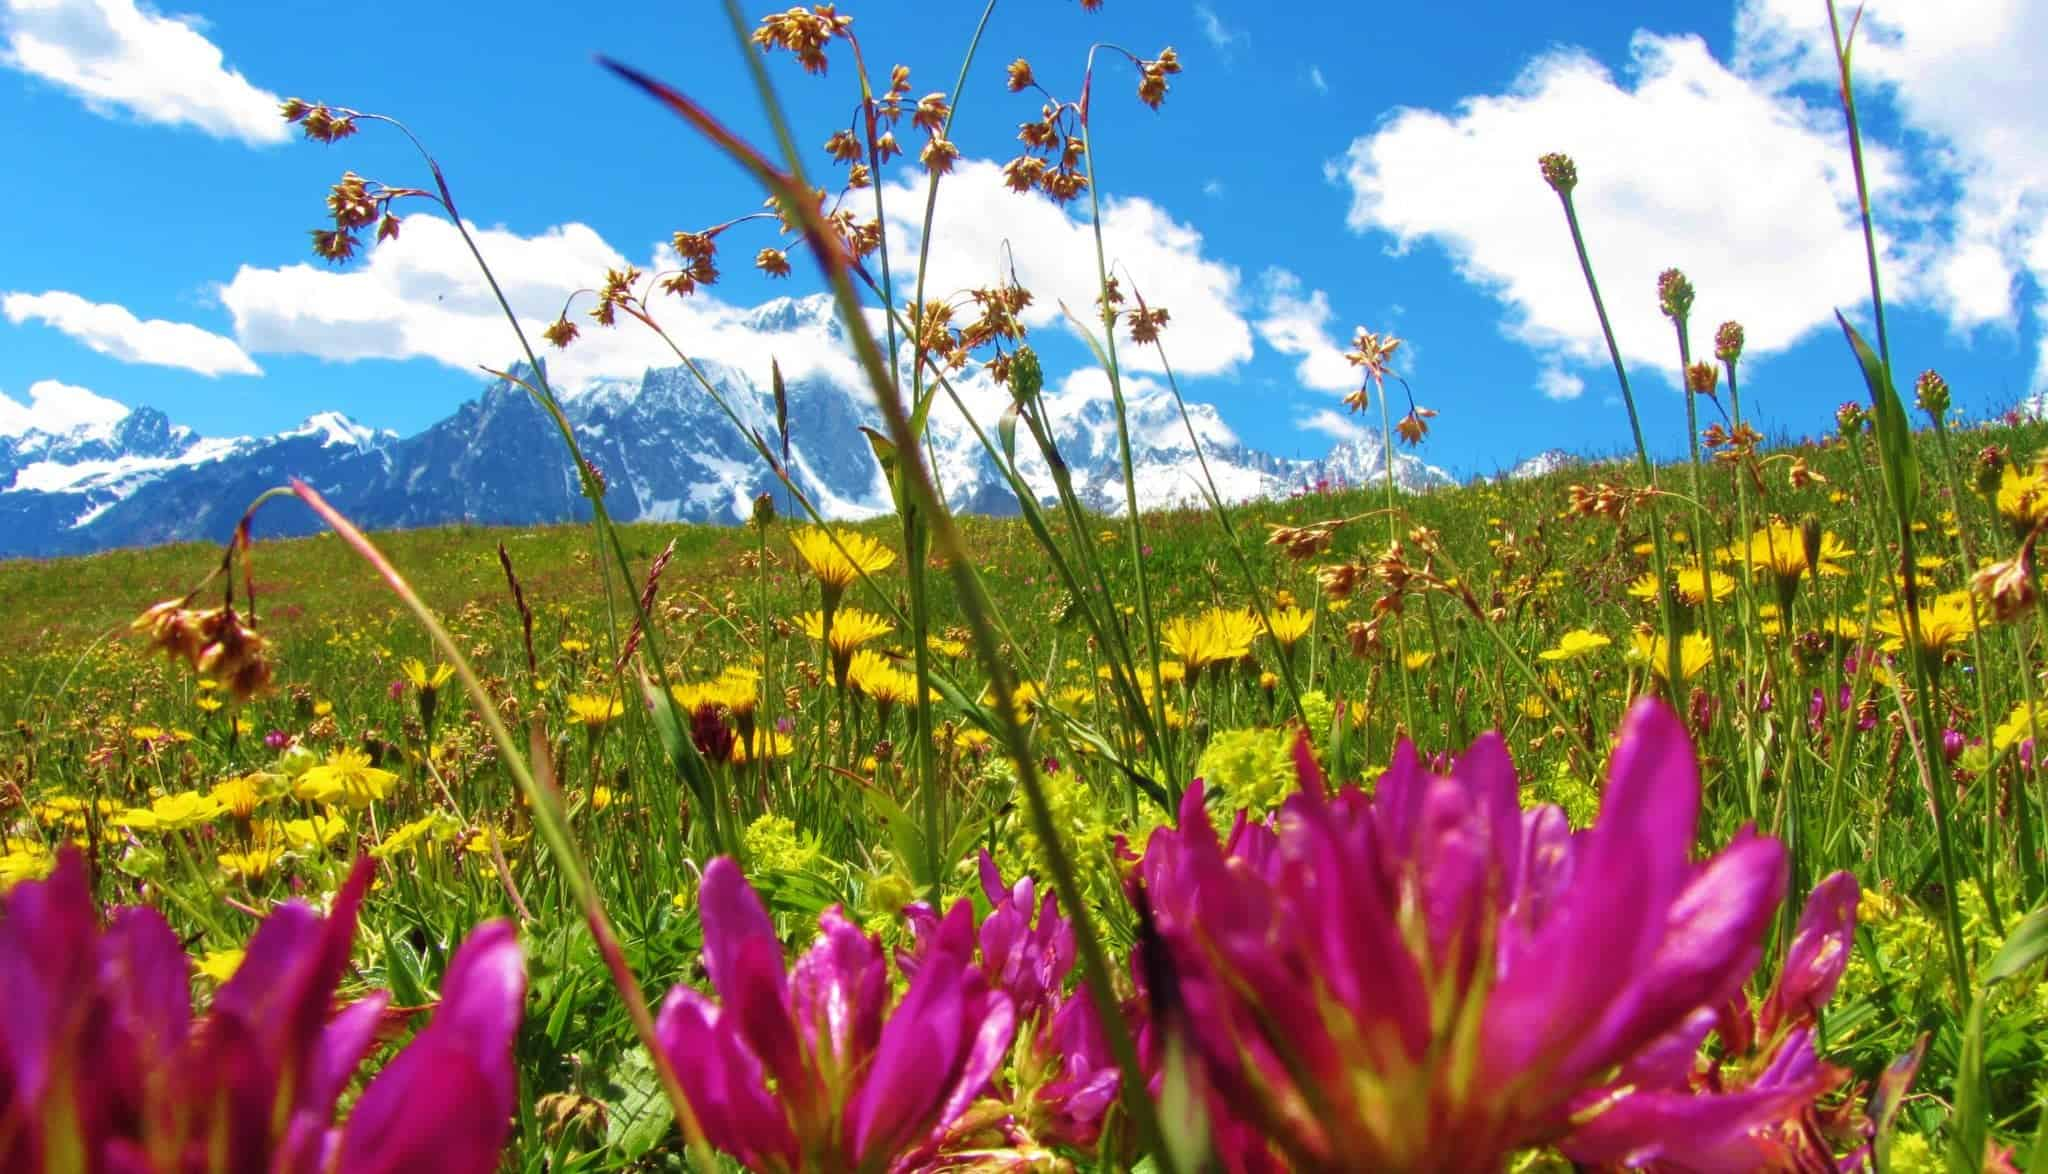 Best Places in the World to see flowers | Flower Tourism